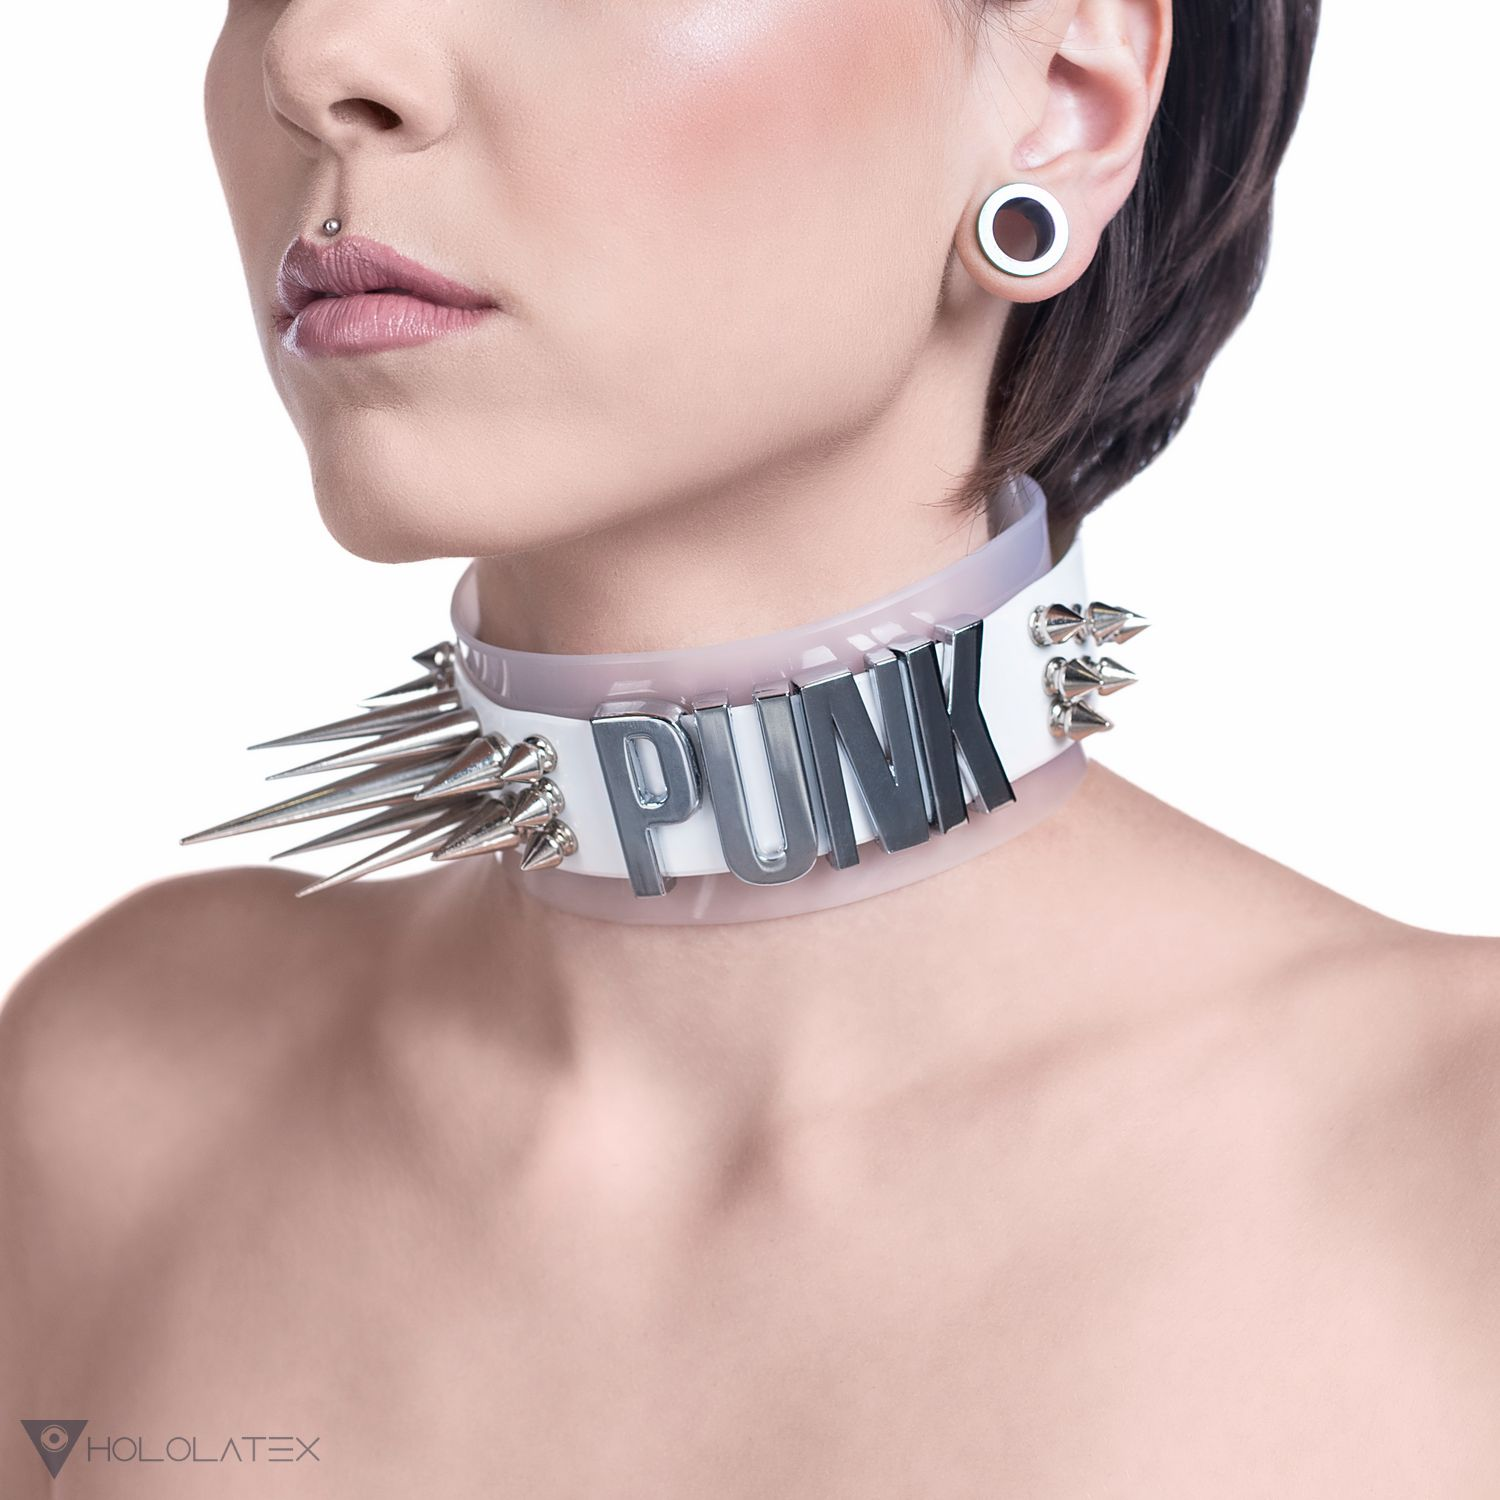 White and semi-transparent white extravagant PVC neck choker with lots of spikes and the word PUNK.